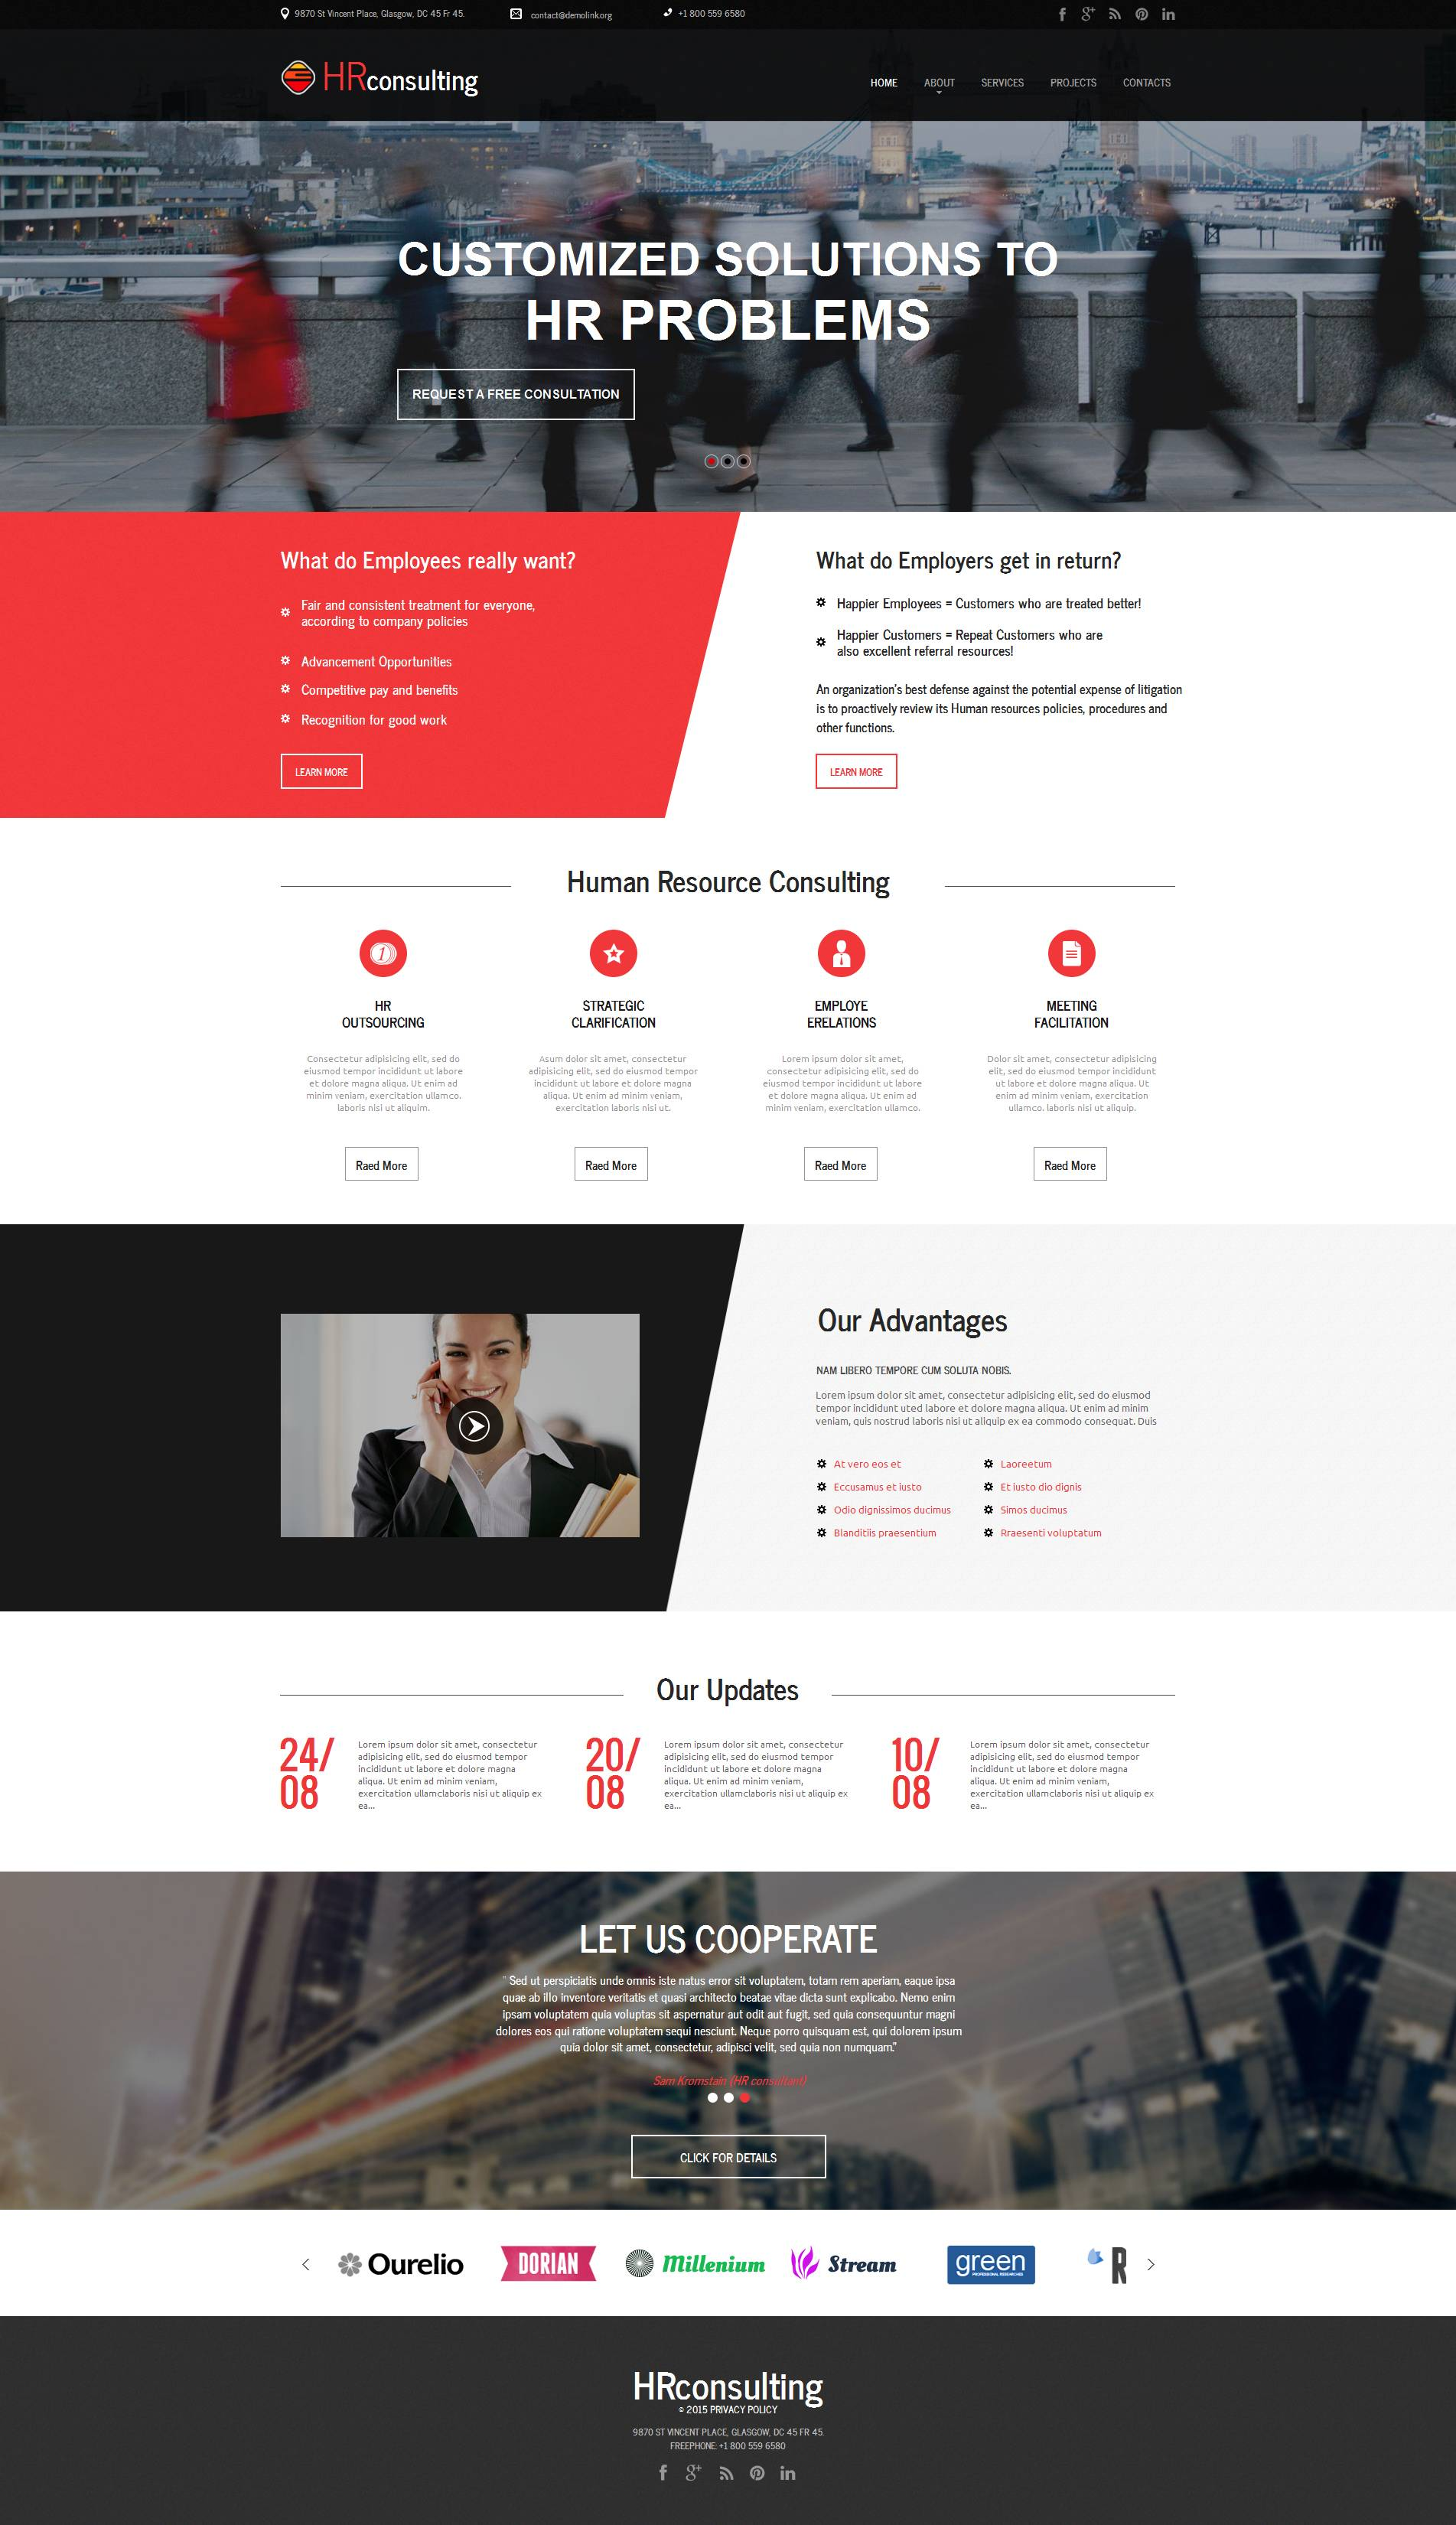 The HR Consulting Business Moto CMS HTML Design 53637, one of the best Moto CMS HTML templates of its kind (business, most popular), also known as HR Consulting business Moto CMS HTML template, success company Moto CMS HTML template, enterprise solution Moto CMS HTML template, business Moto CMS HTML template, industry Moto CMS HTML template, technical Moto CMS HTML template, clients Moto CMS HTML template, customer support Moto CMS HTML template, automate Moto CMS HTML template, flow Moto CMS HTML template, services Moto CMS HTML template, plug-in Moto CMS HTML template, flex Moto CMS HTML template, profile Moto CMS HTML template, principles Moto CMS HTML template, web products Moto CMS HTML template, technology system and related with HR Consulting business, success company, enterprise solution, business, industry, technical, clients, customer support, automate, flow, services, plug-in, flex, profile, principles, web products, technology system, etc.